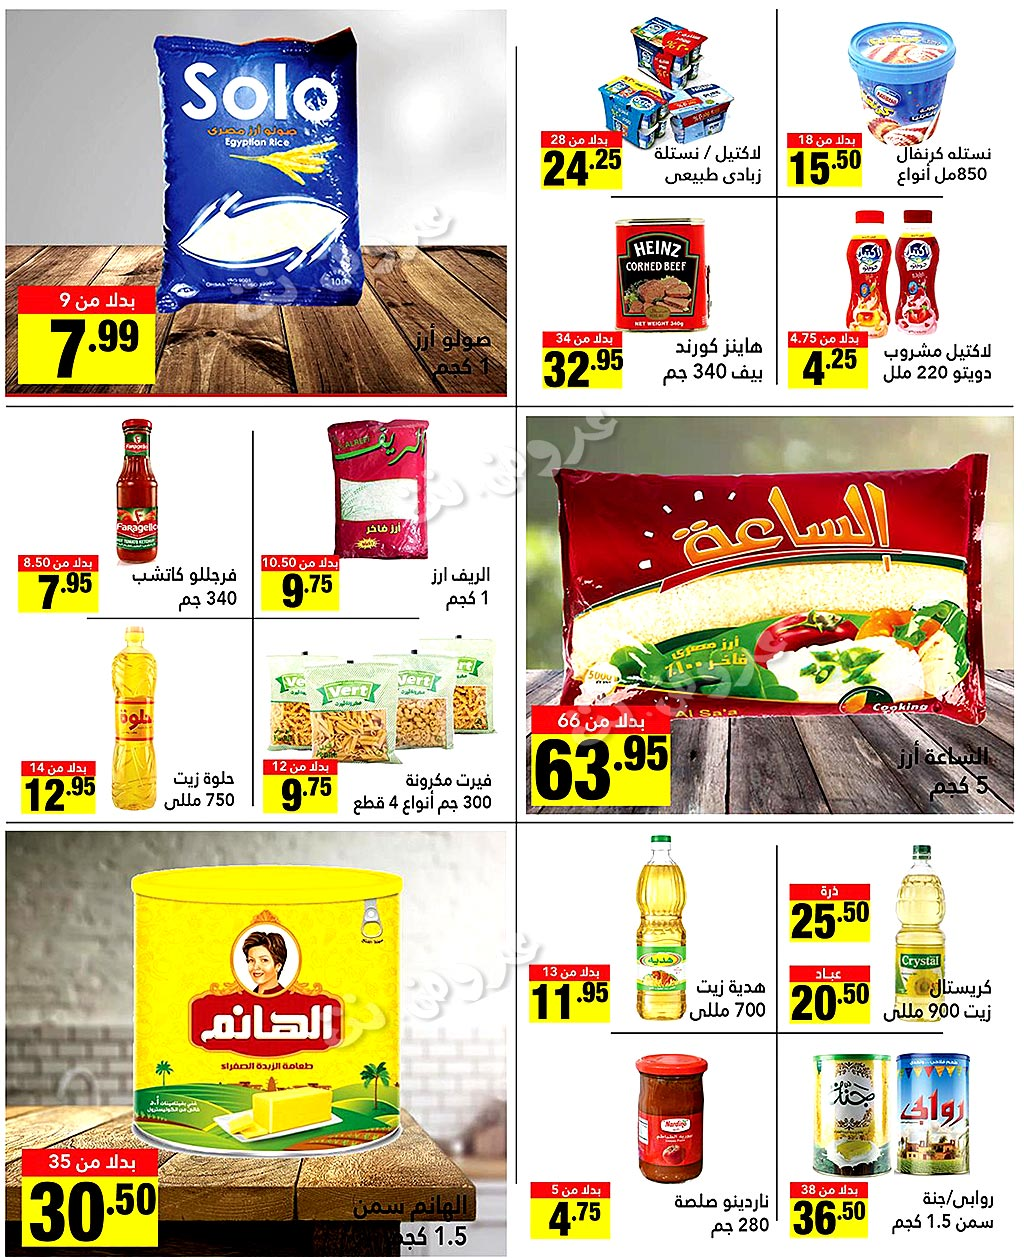 hyper-plus offers from 11july to 24july 2019 page number 2 عروض هايبر بلس من 11 يوليو حتى 24 يوليو 2019 صفحة رقم 2